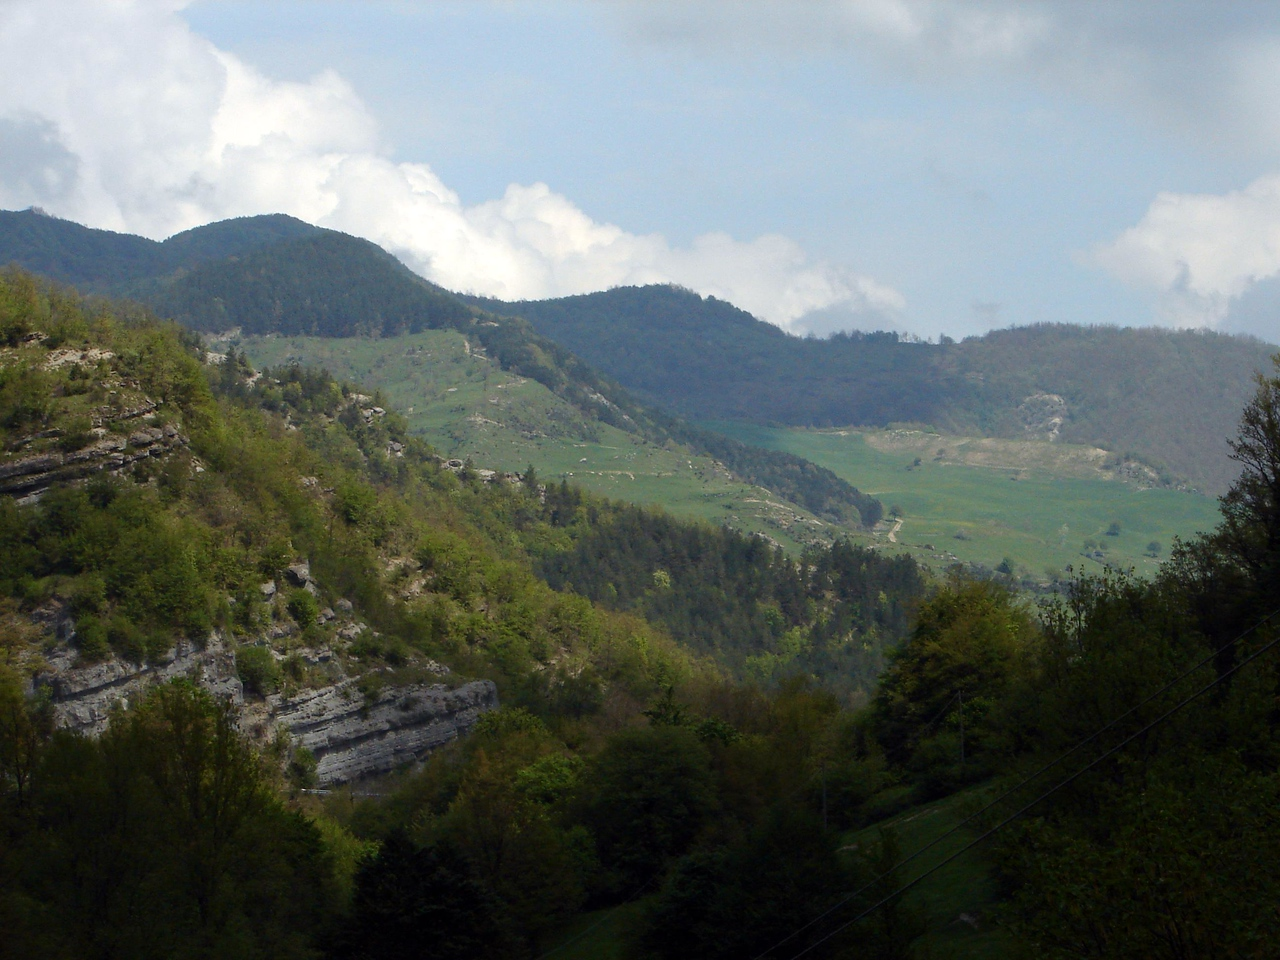 Don likes to stop on mountain side roads to take pictures. I am having a heart attack in the car. Nice view, though :)